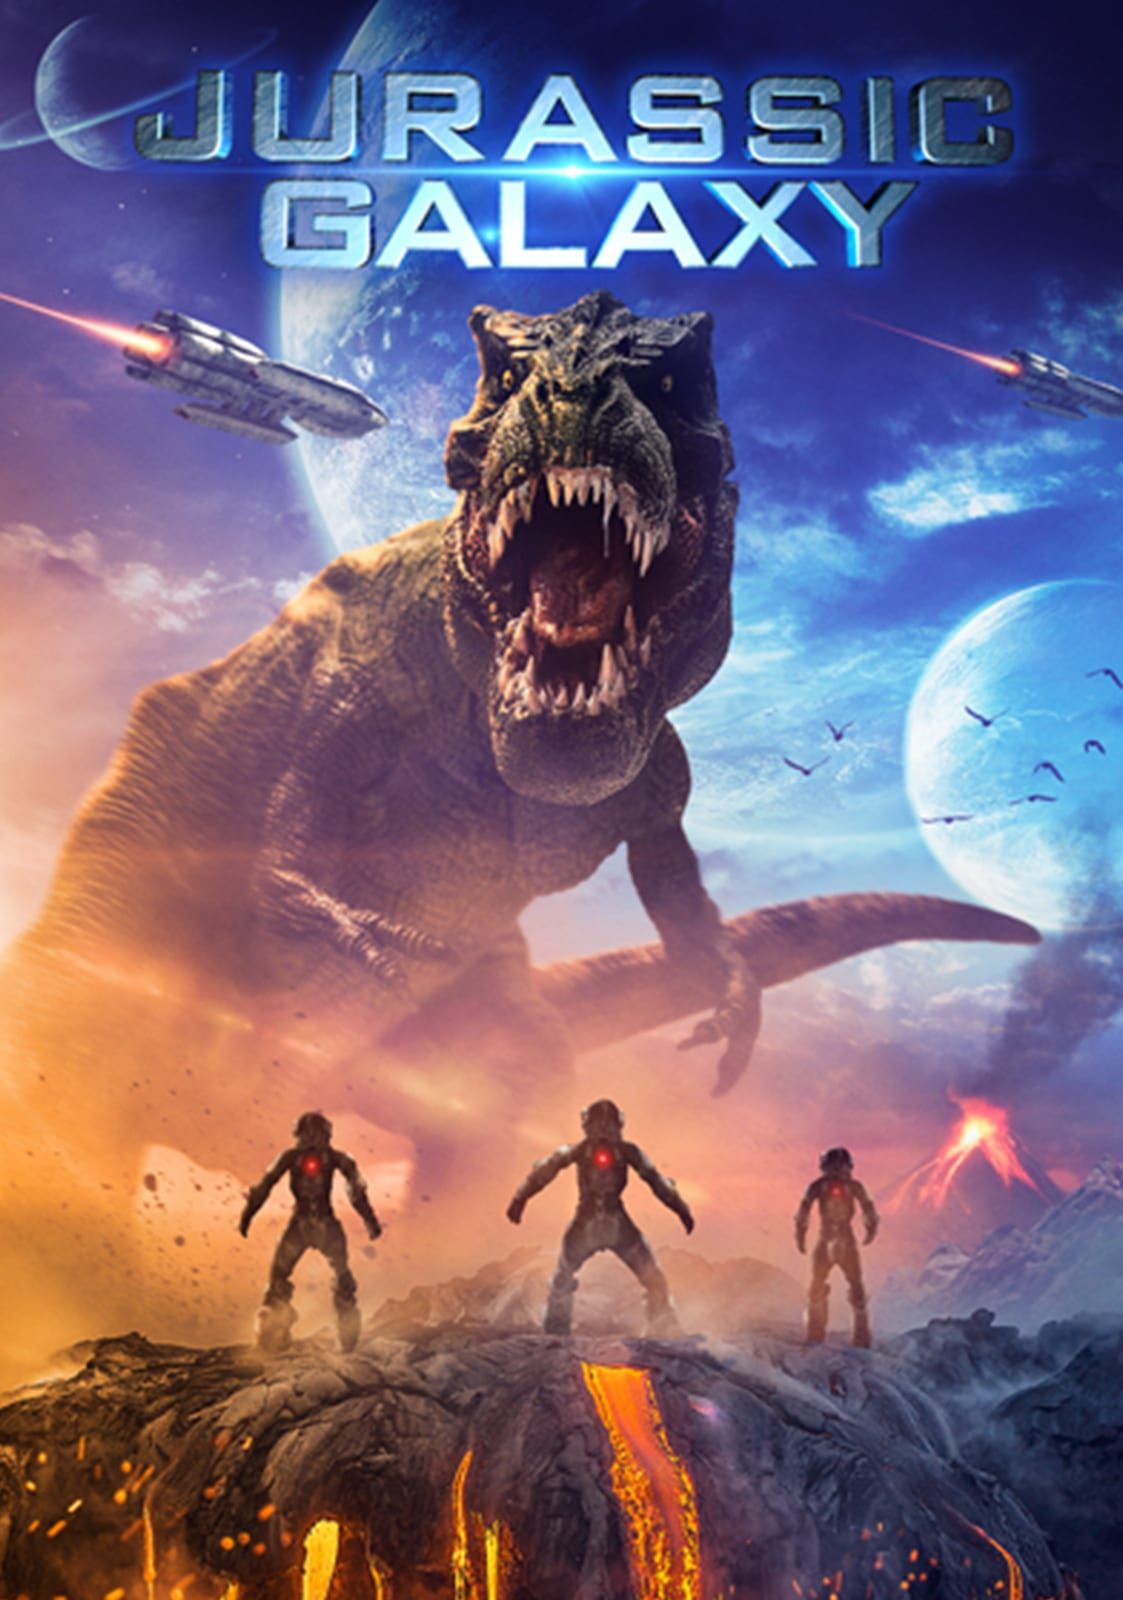 Jurassic Galaxy Dinosaur Movie Hd Movies Hd Movies Download